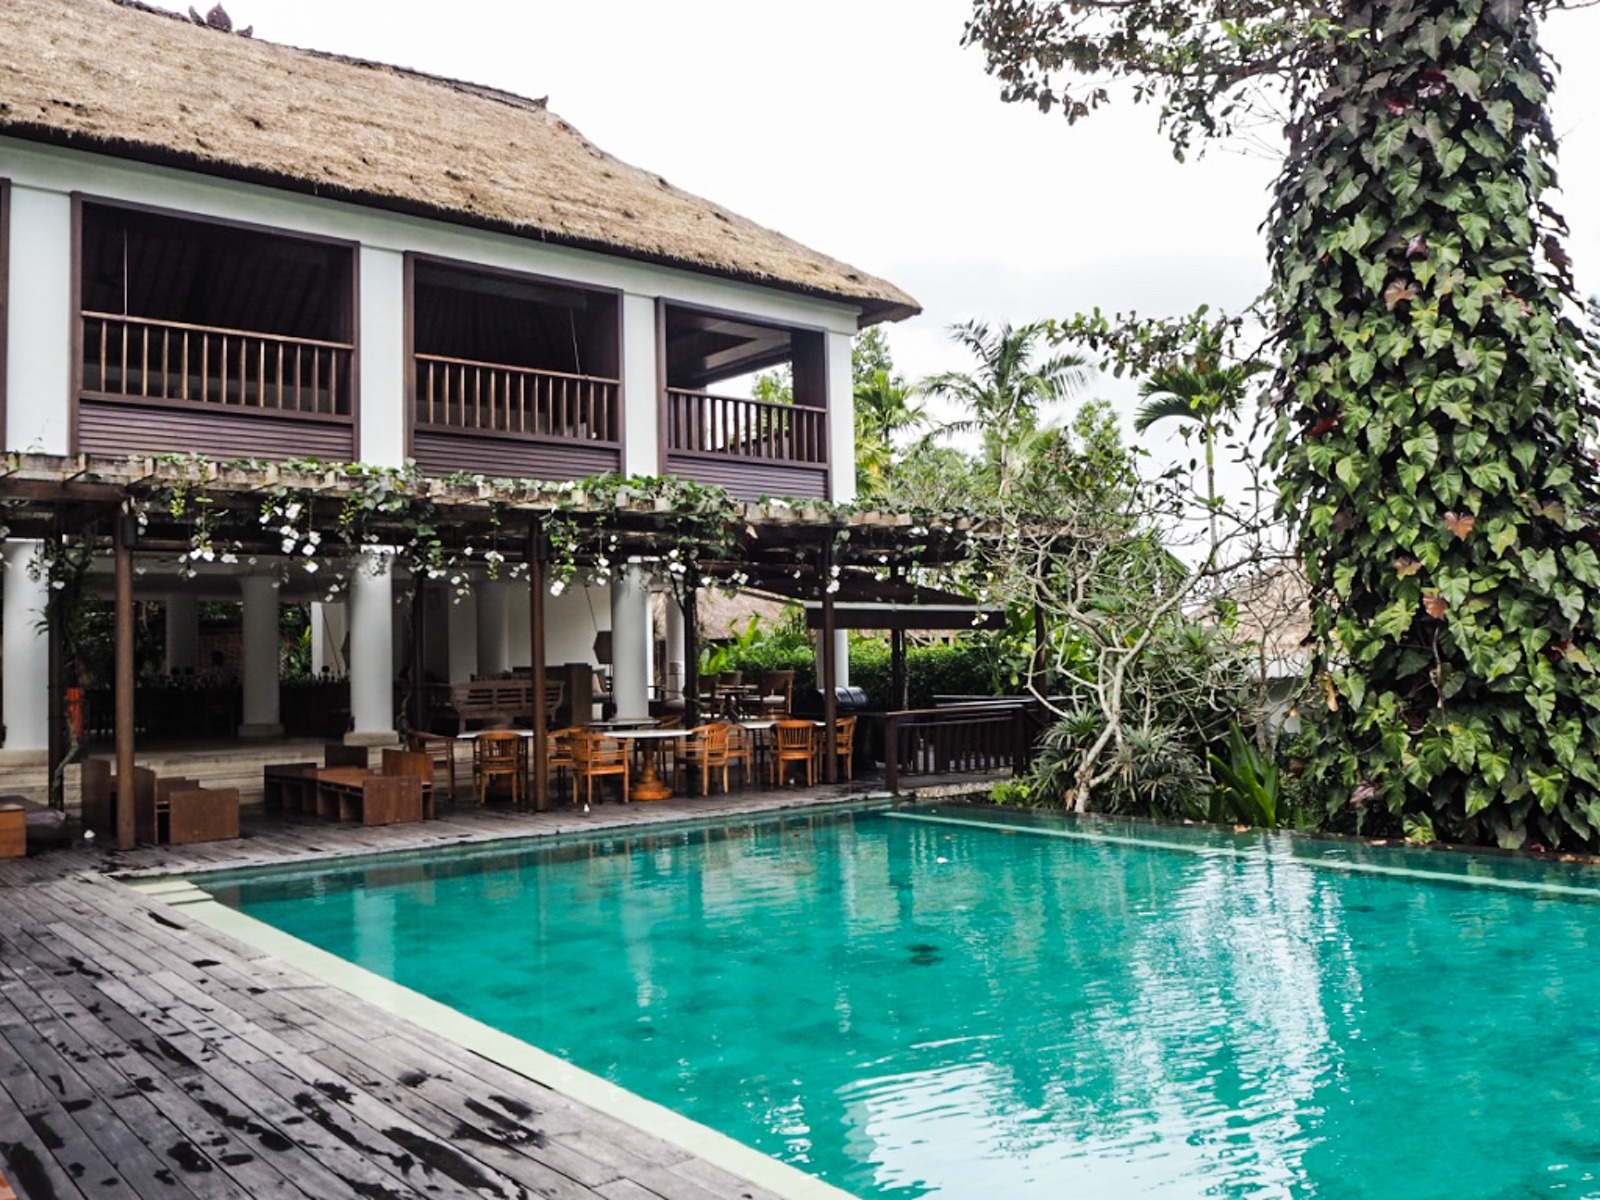 Cucina Uma Ubud Como Uma Ubud Luxury Retreat Resort Bali The Fit Traveller